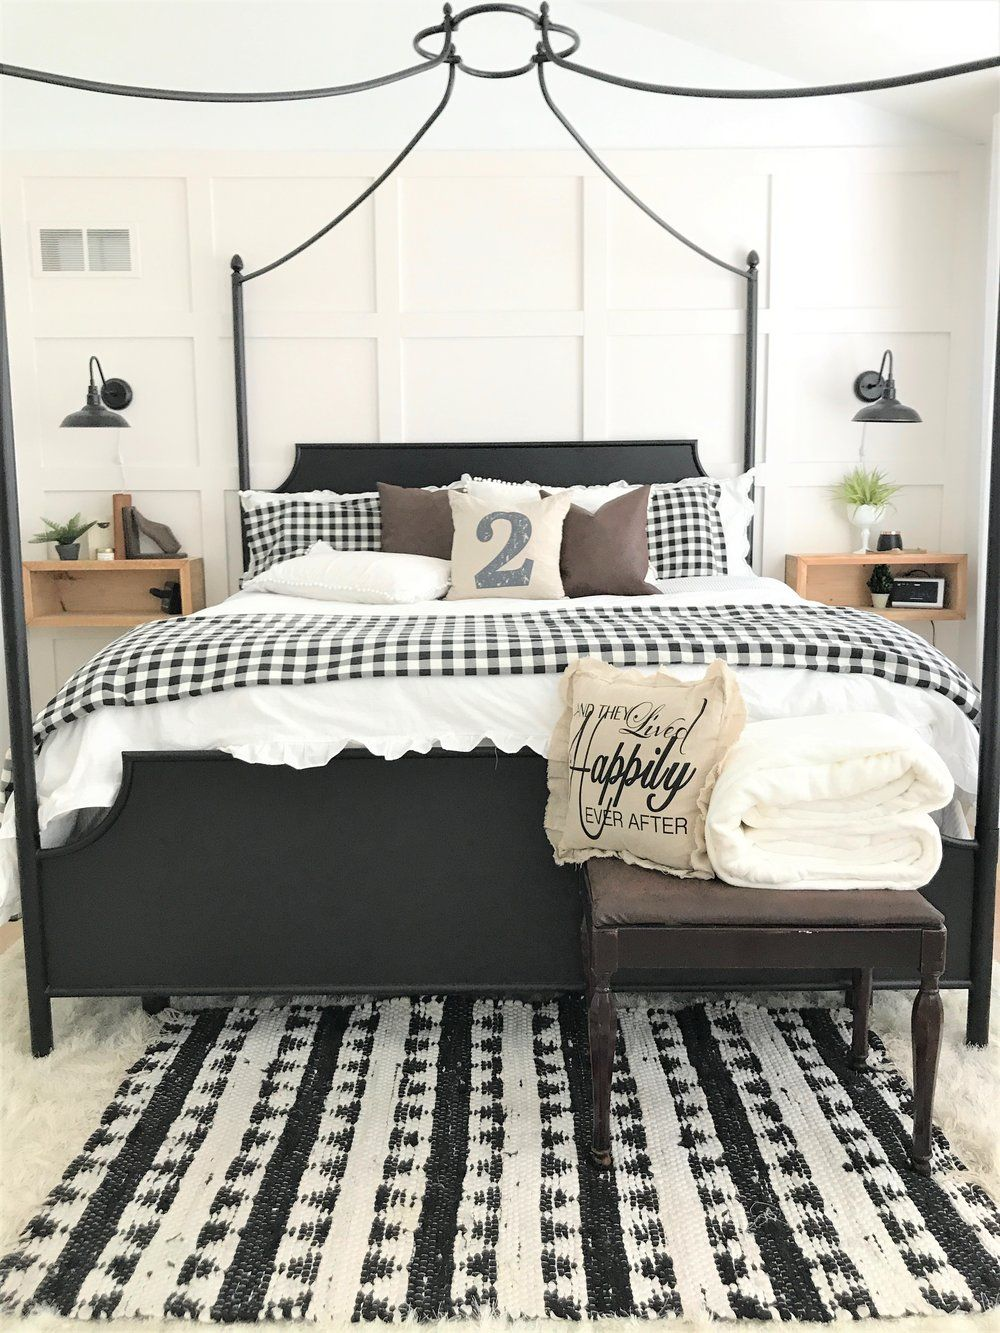 Modern Farmhouse Bedroom Makeover Master Buffalo Check Plaid Black And White Diy Wood Leather Magnolia Boho